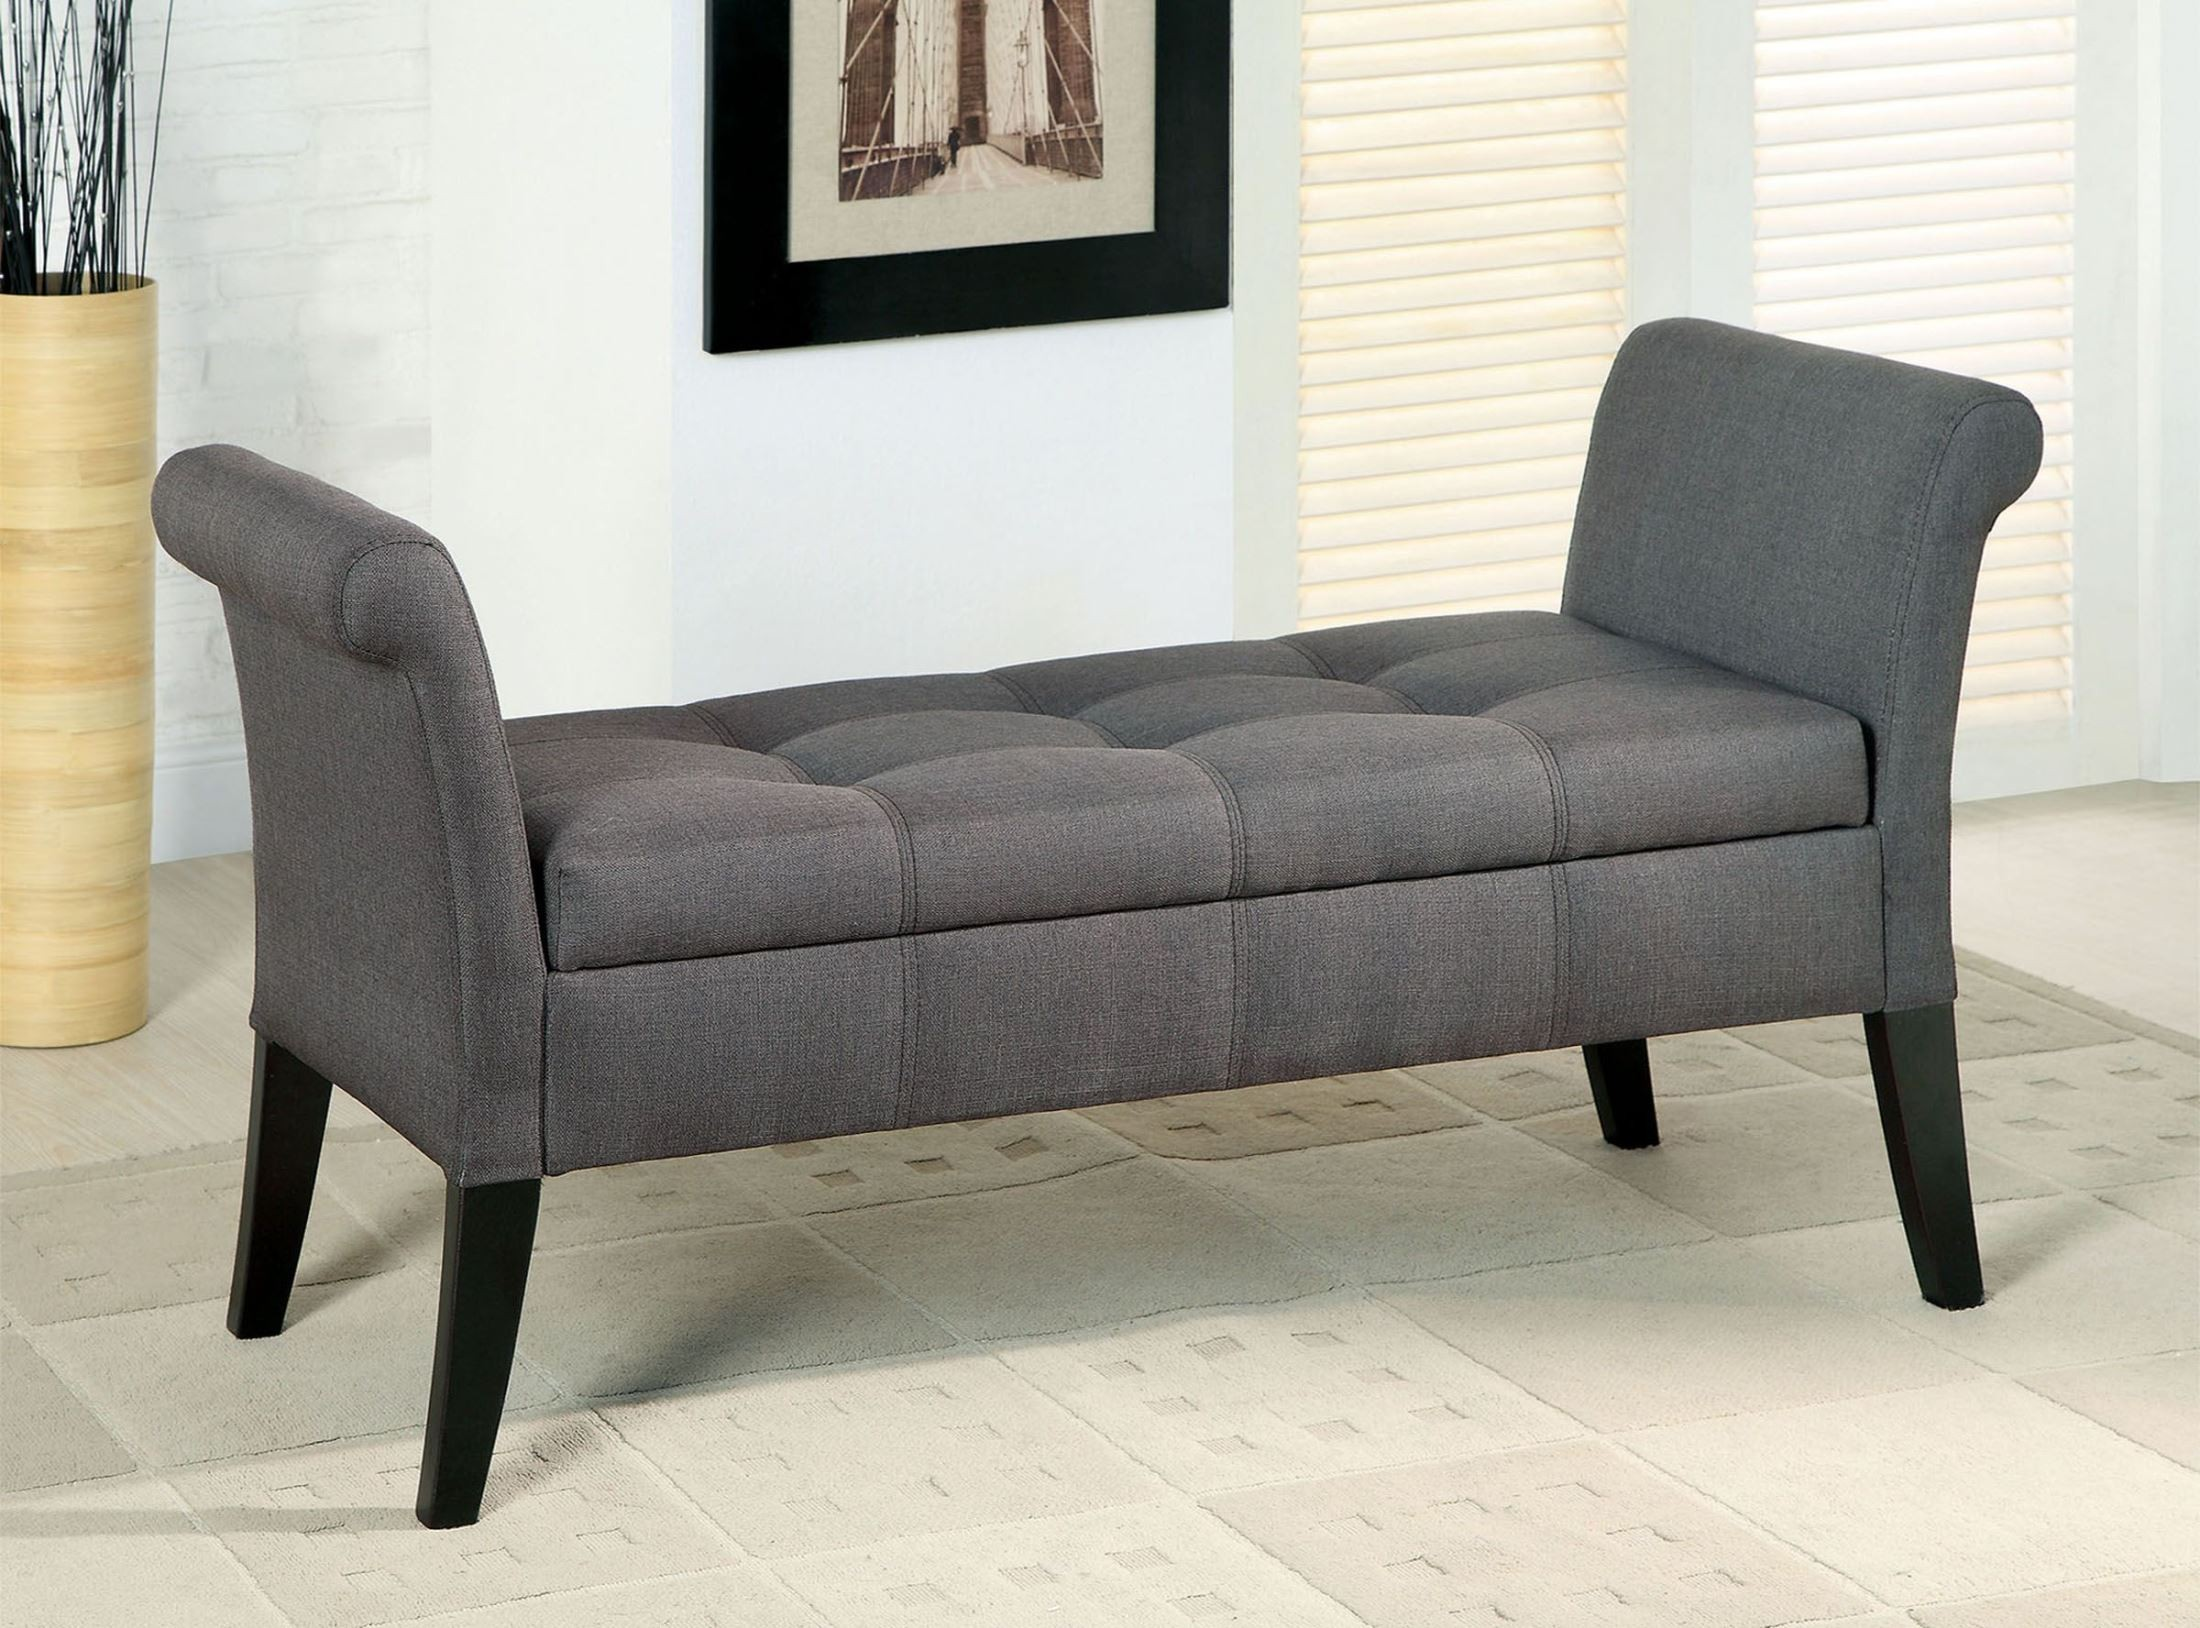 Doheny gray fabric storage bench from furniture of america cm bn6190gy coleman furniture Gray storage bench